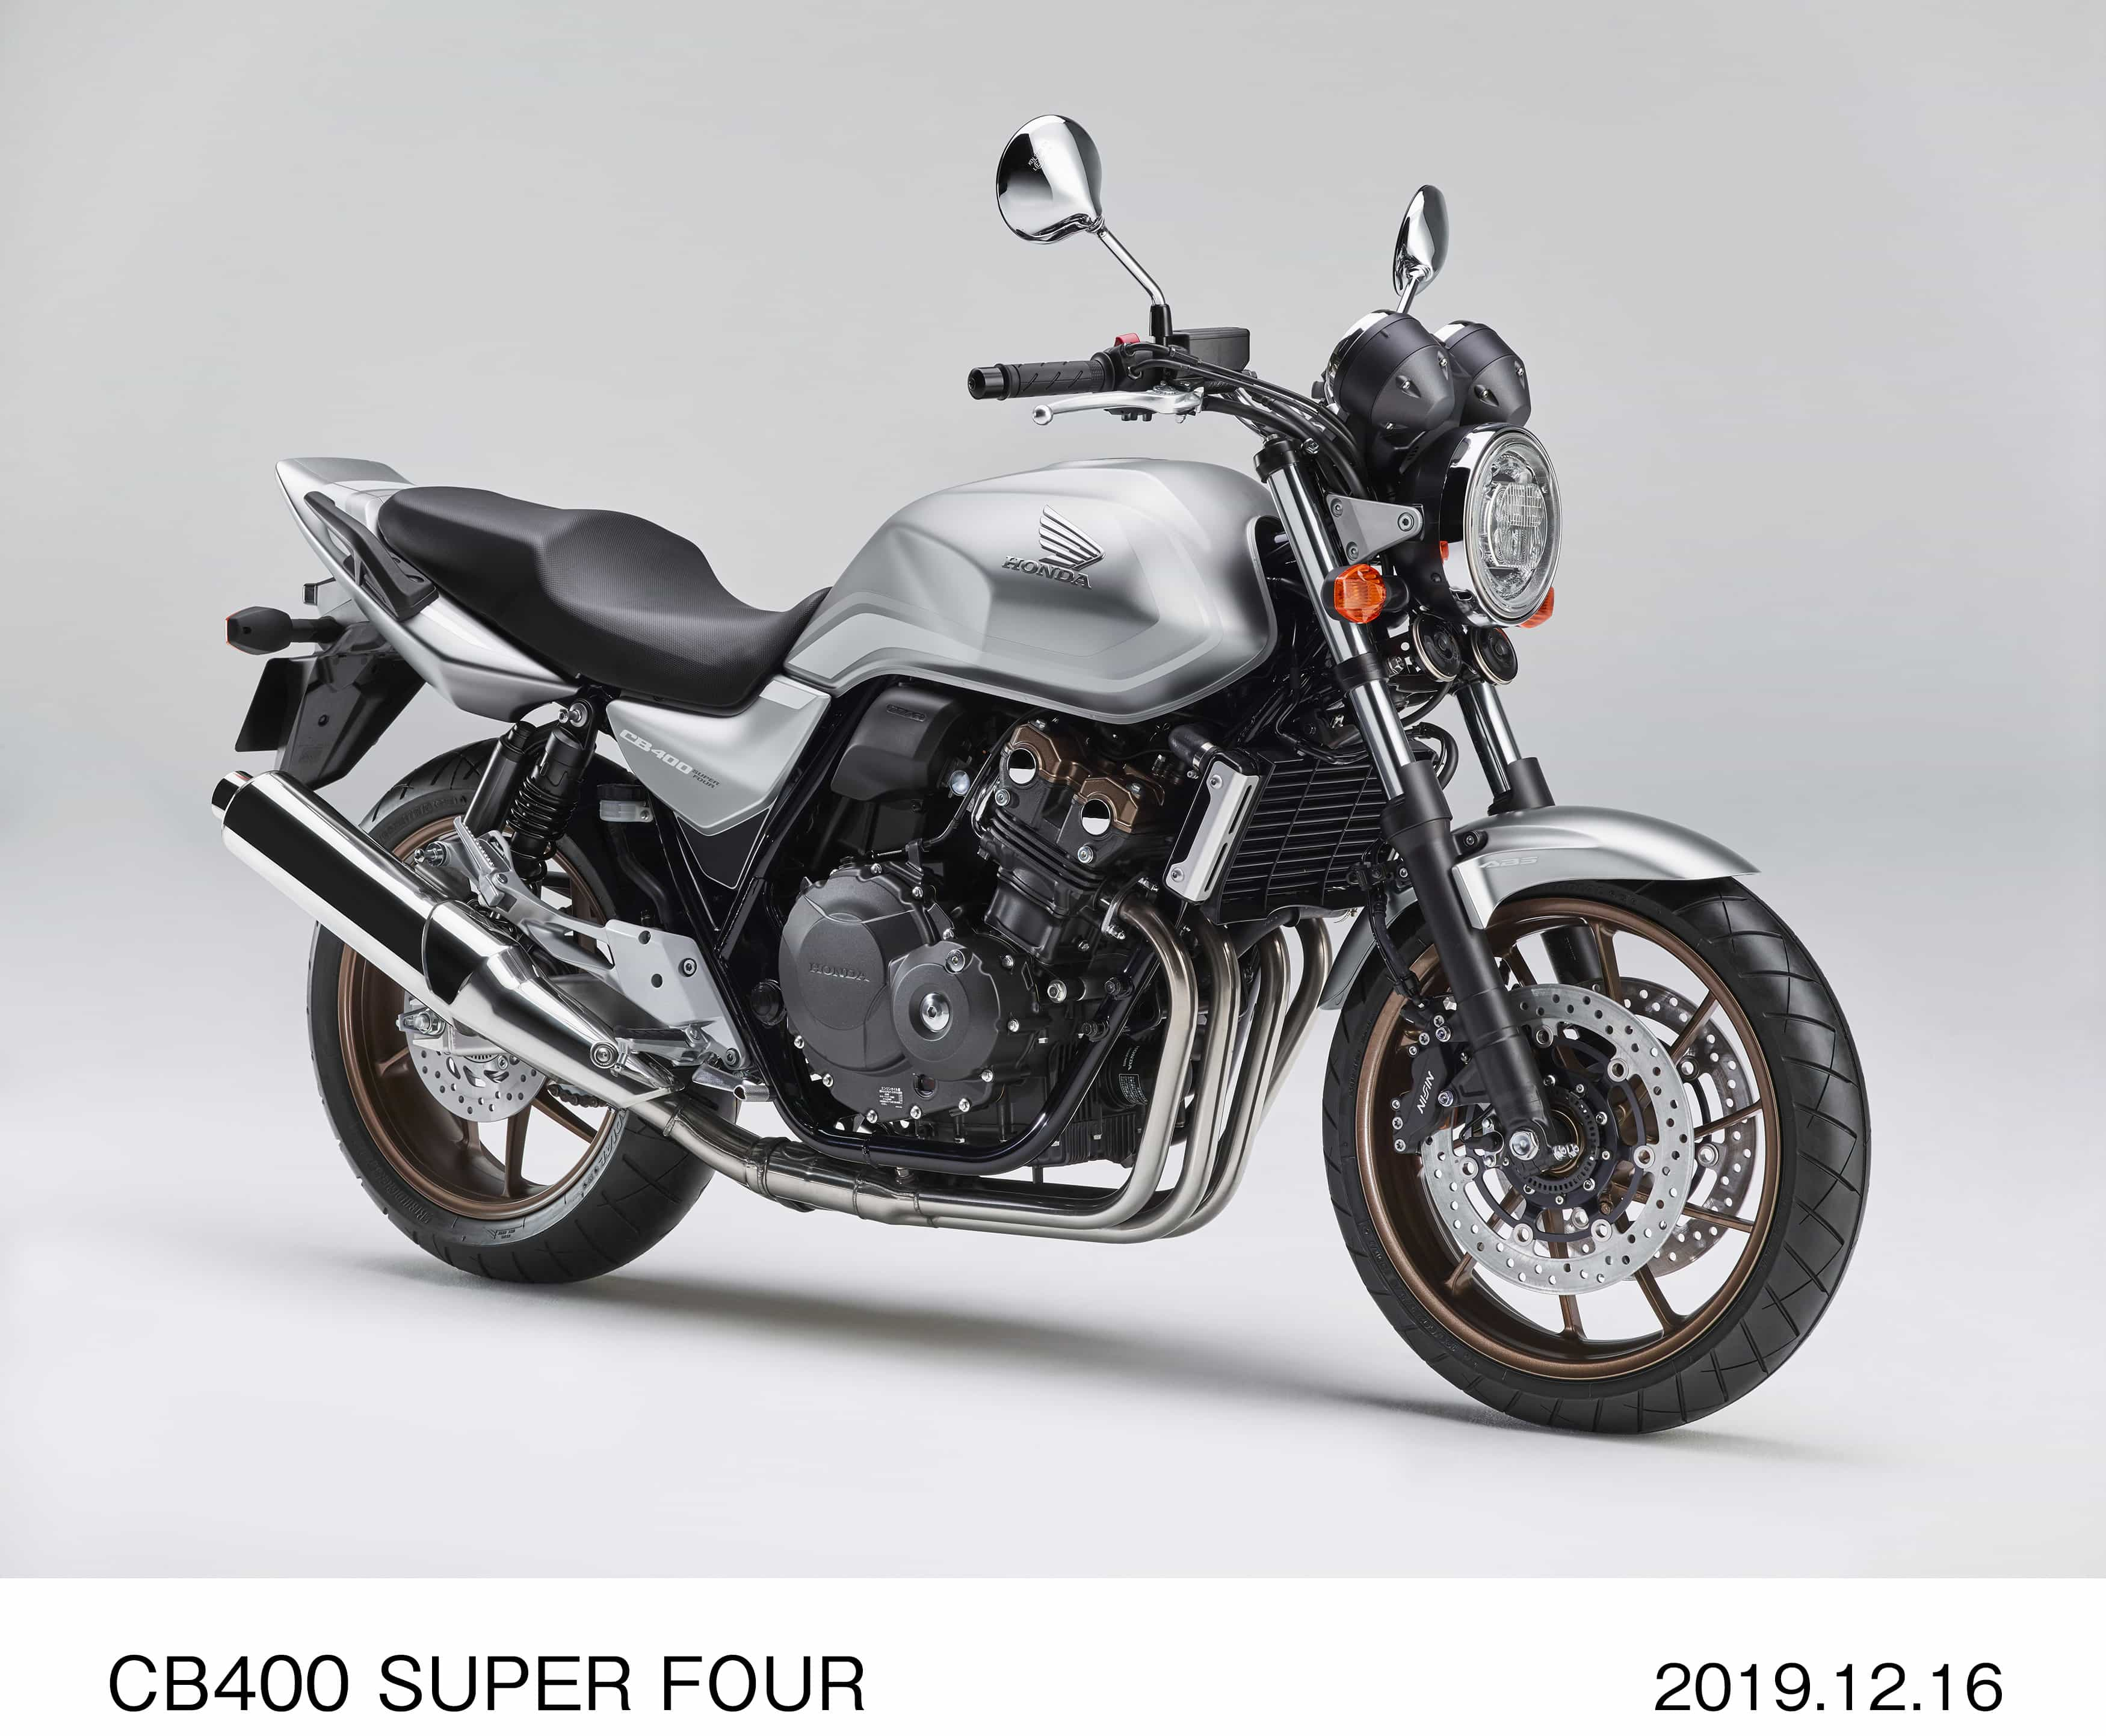 CB400 SUPER FOUR